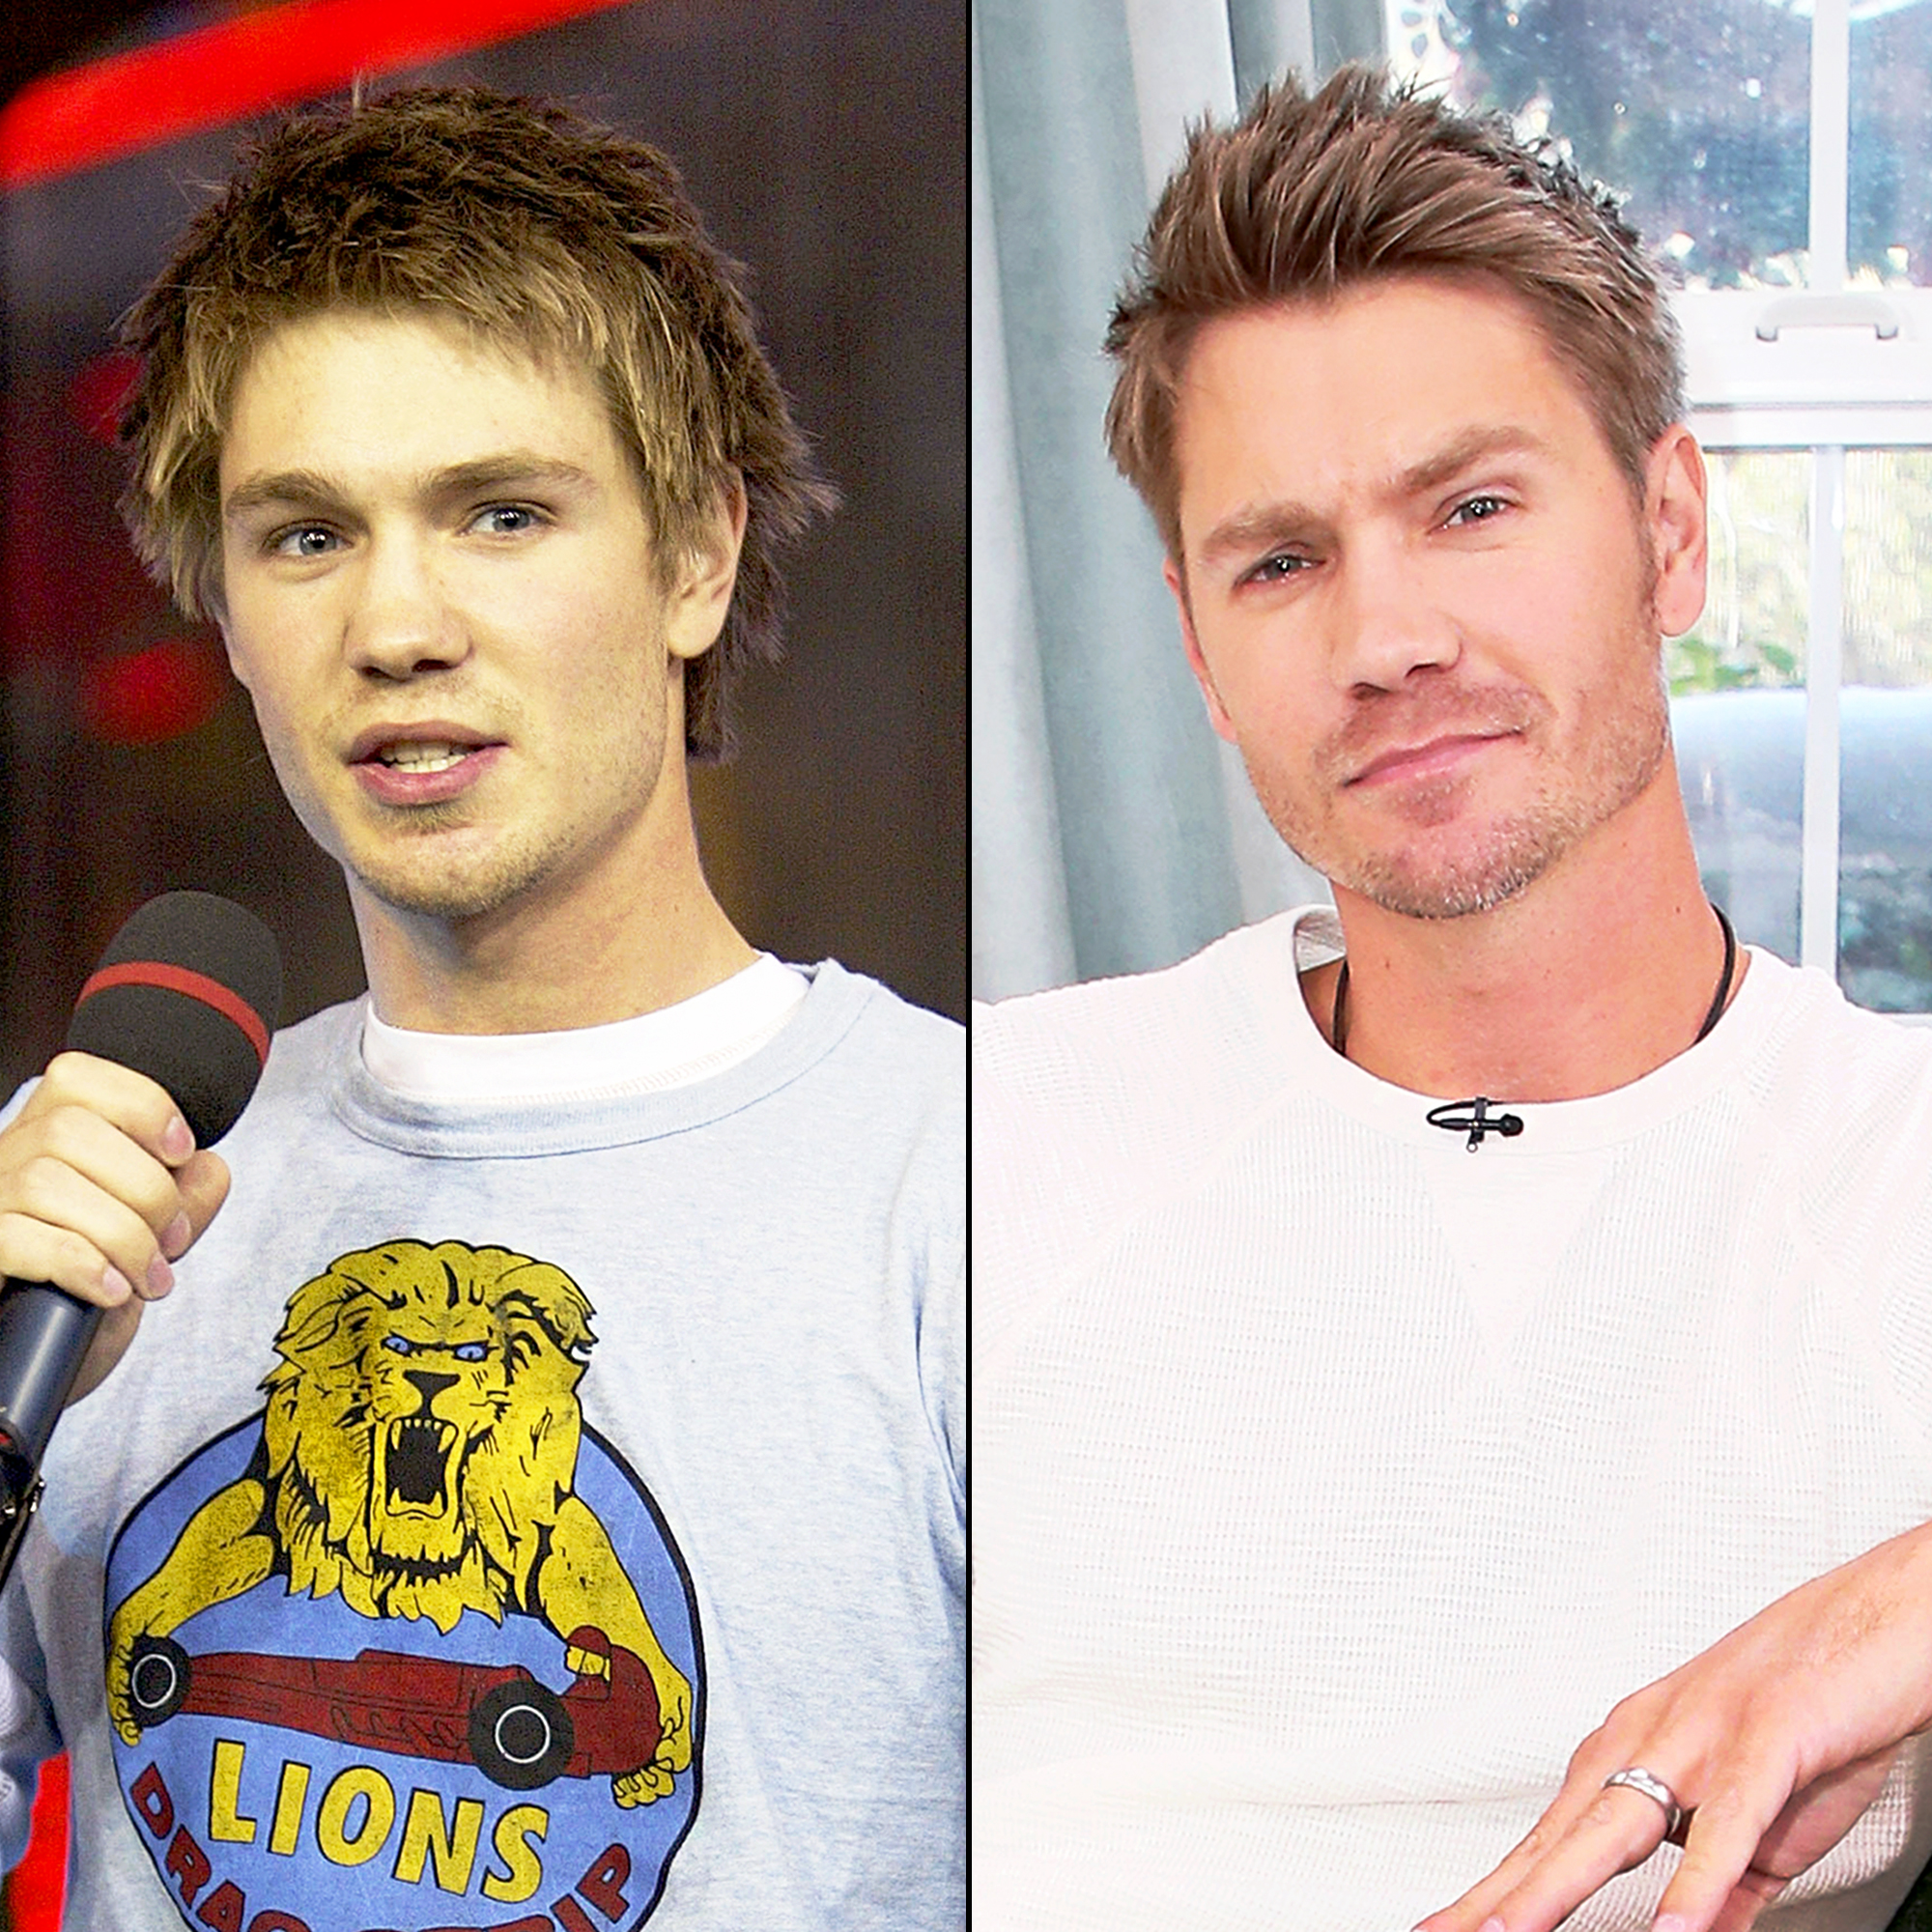 Chad Michael Murray - Murray was well-known before landing the role of Lucas Scott, Tree Hill's brooding basketball player. After being featured on Gilmore Girls and Dawson's Creek , he joined One Tree Hill for six seasons, briefly returned in season 7, then again for the final season in 2011.